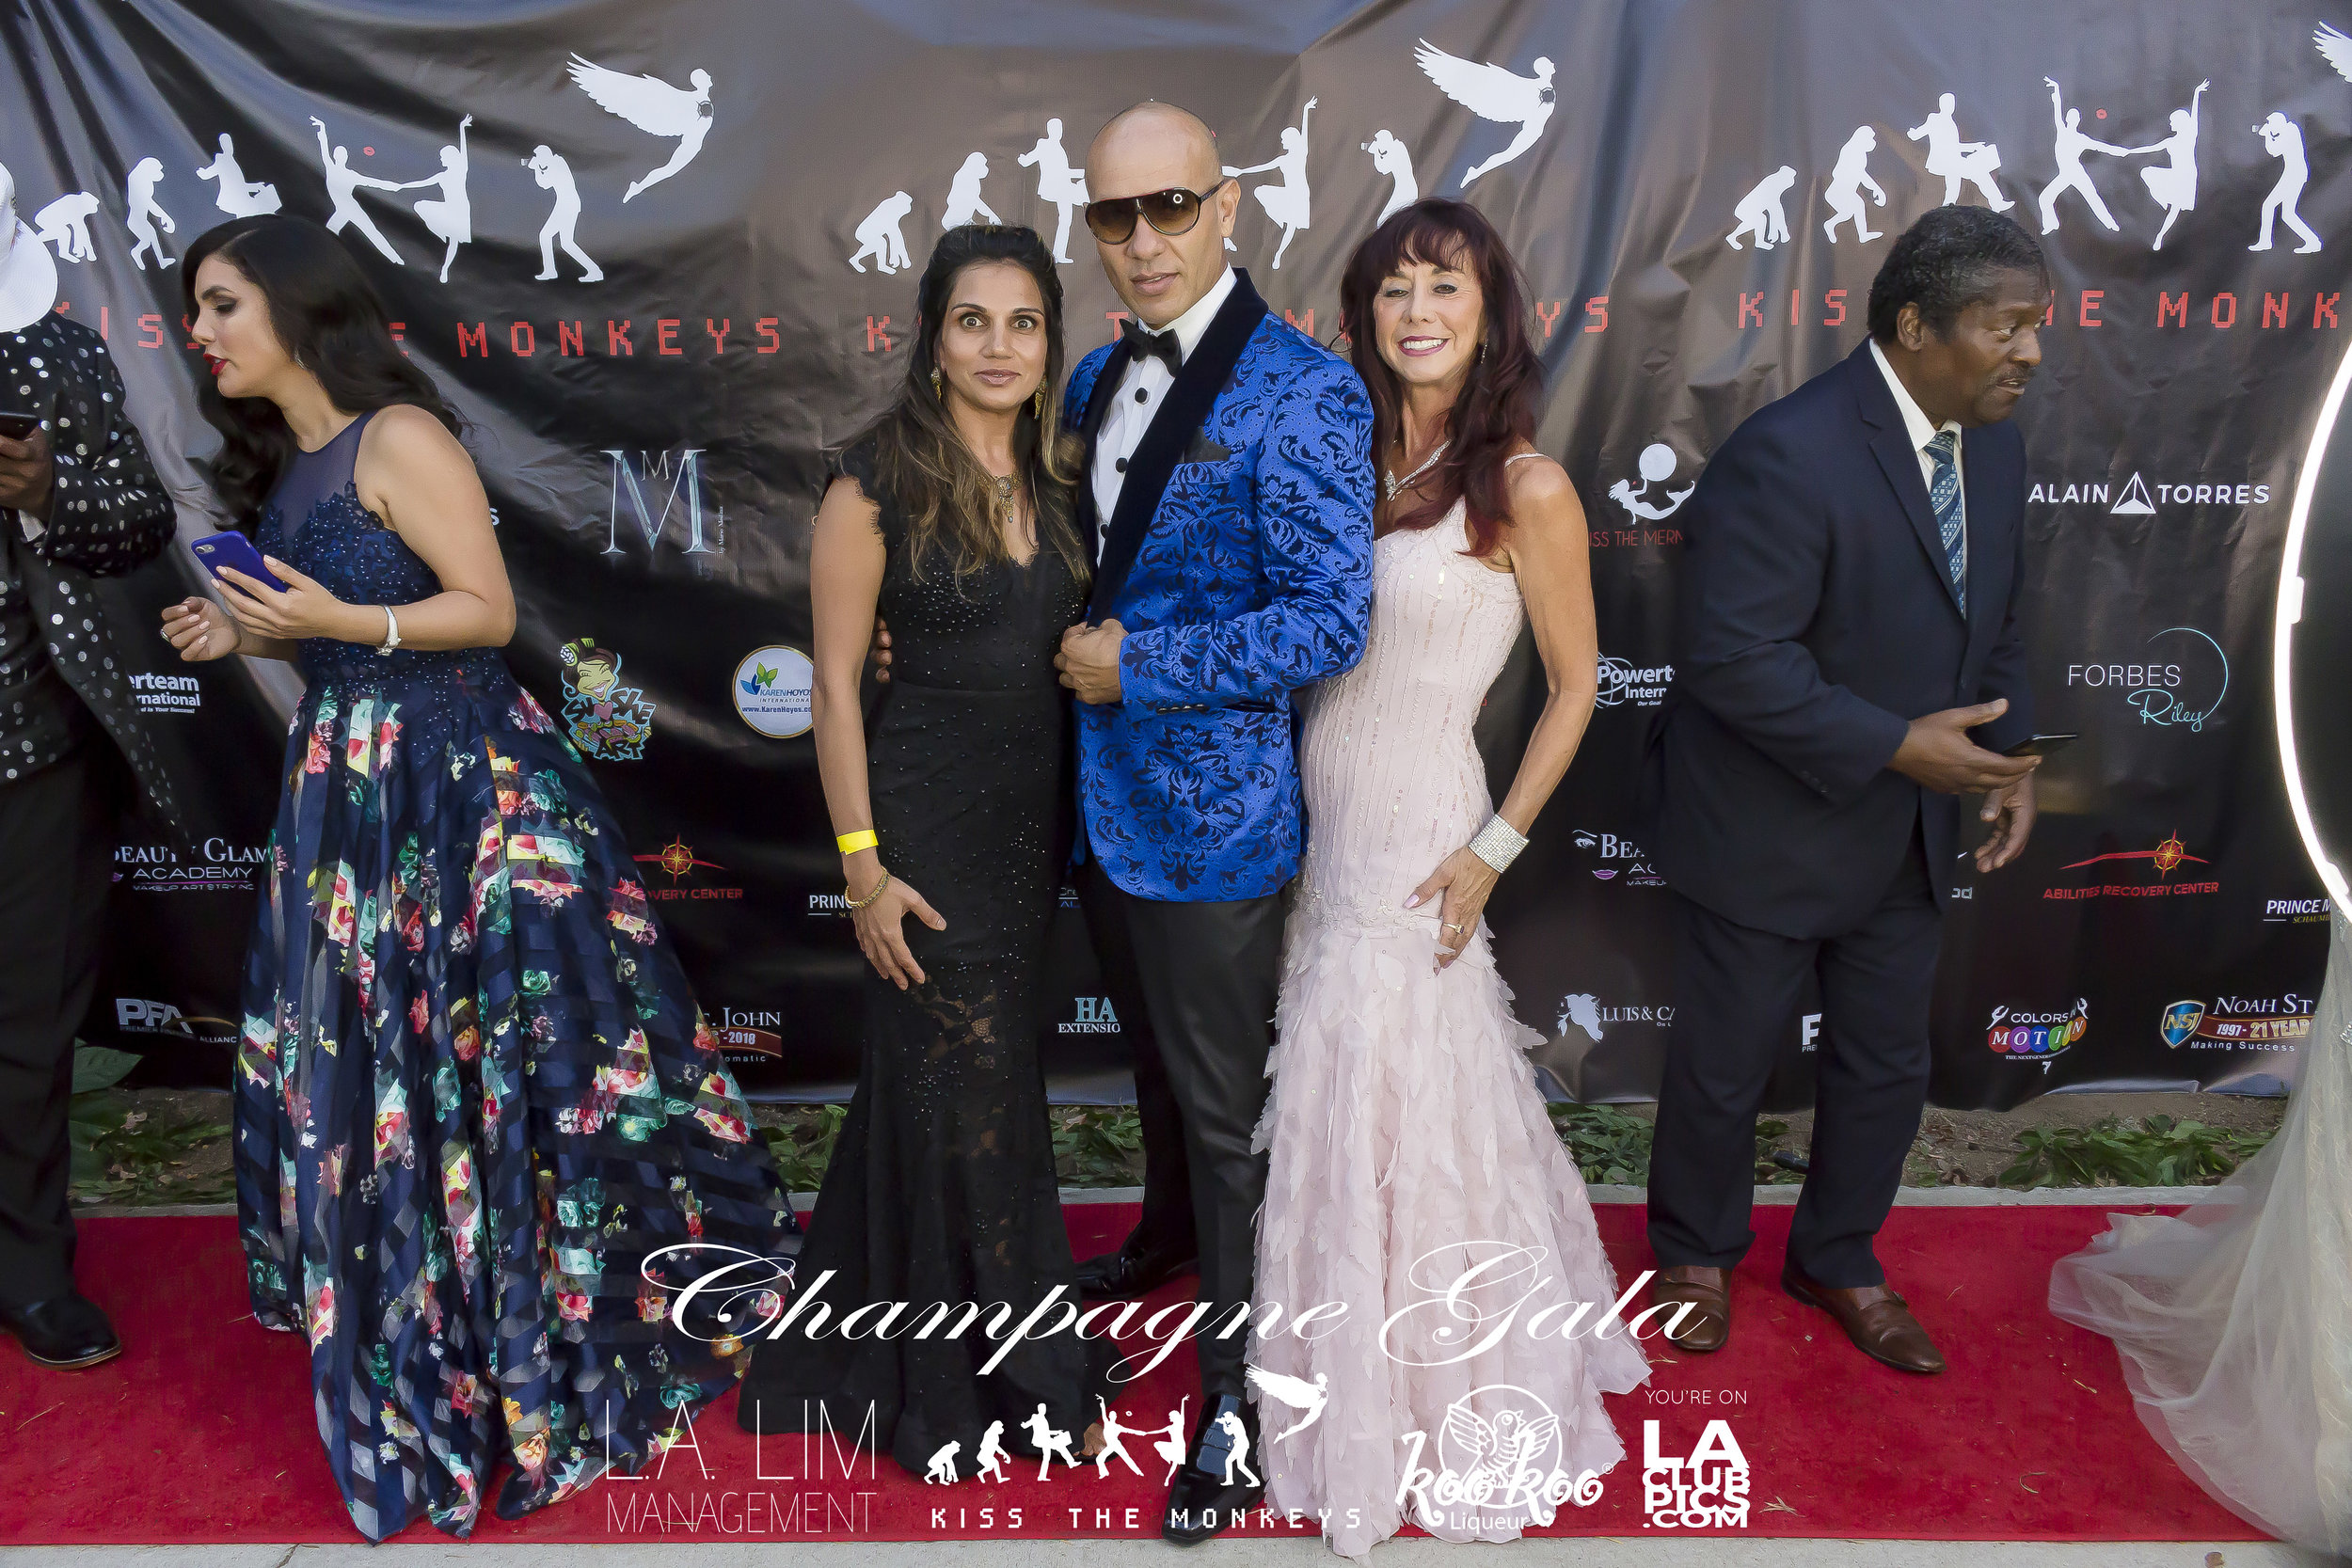 Kiss The Monkeys - Champagne Gala - 07-21-18_139.jpg